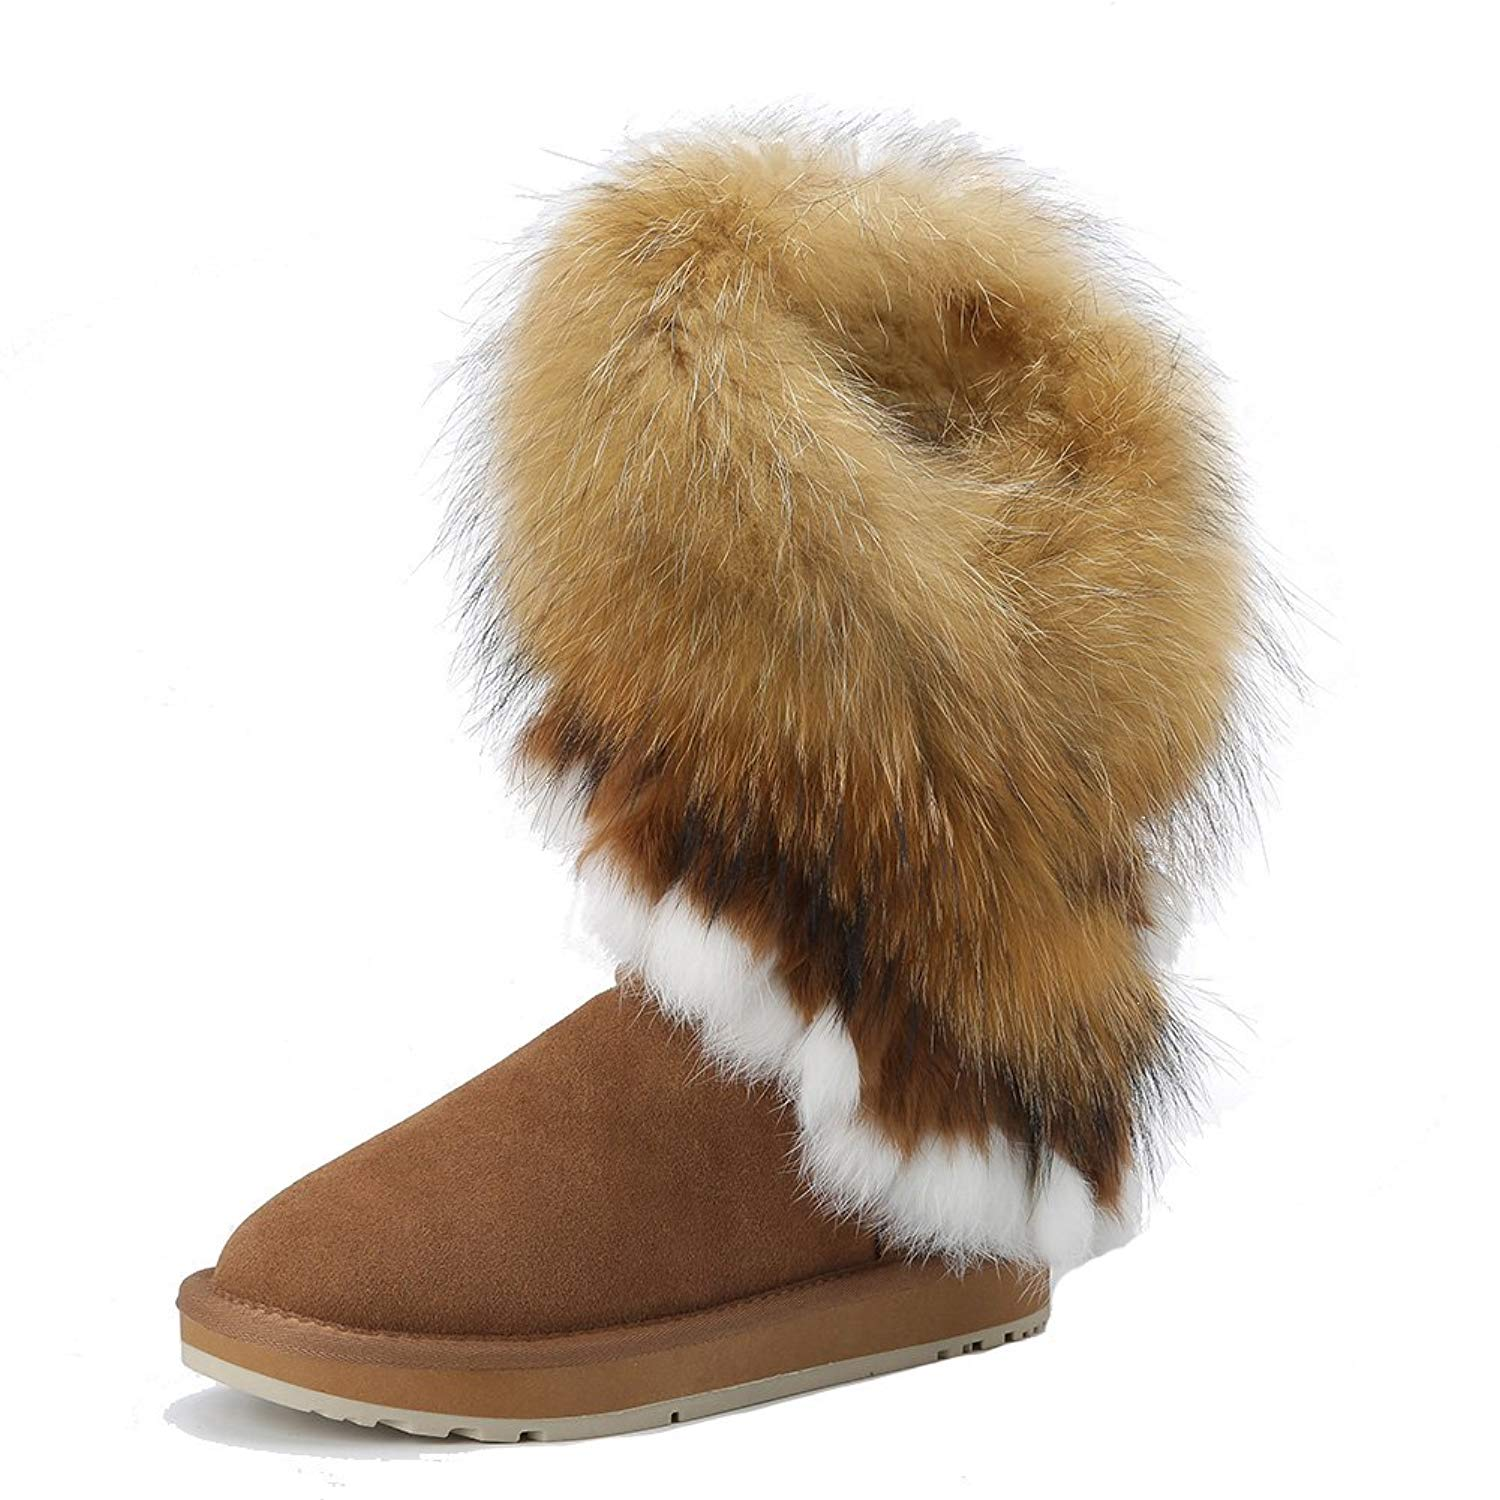 9af162d7 Get Quotations · INOE CREATE GLAMOUR Real Fox Fur Rabbit Fur Faux Sheep Fur  Lined Winter Knee High Snow